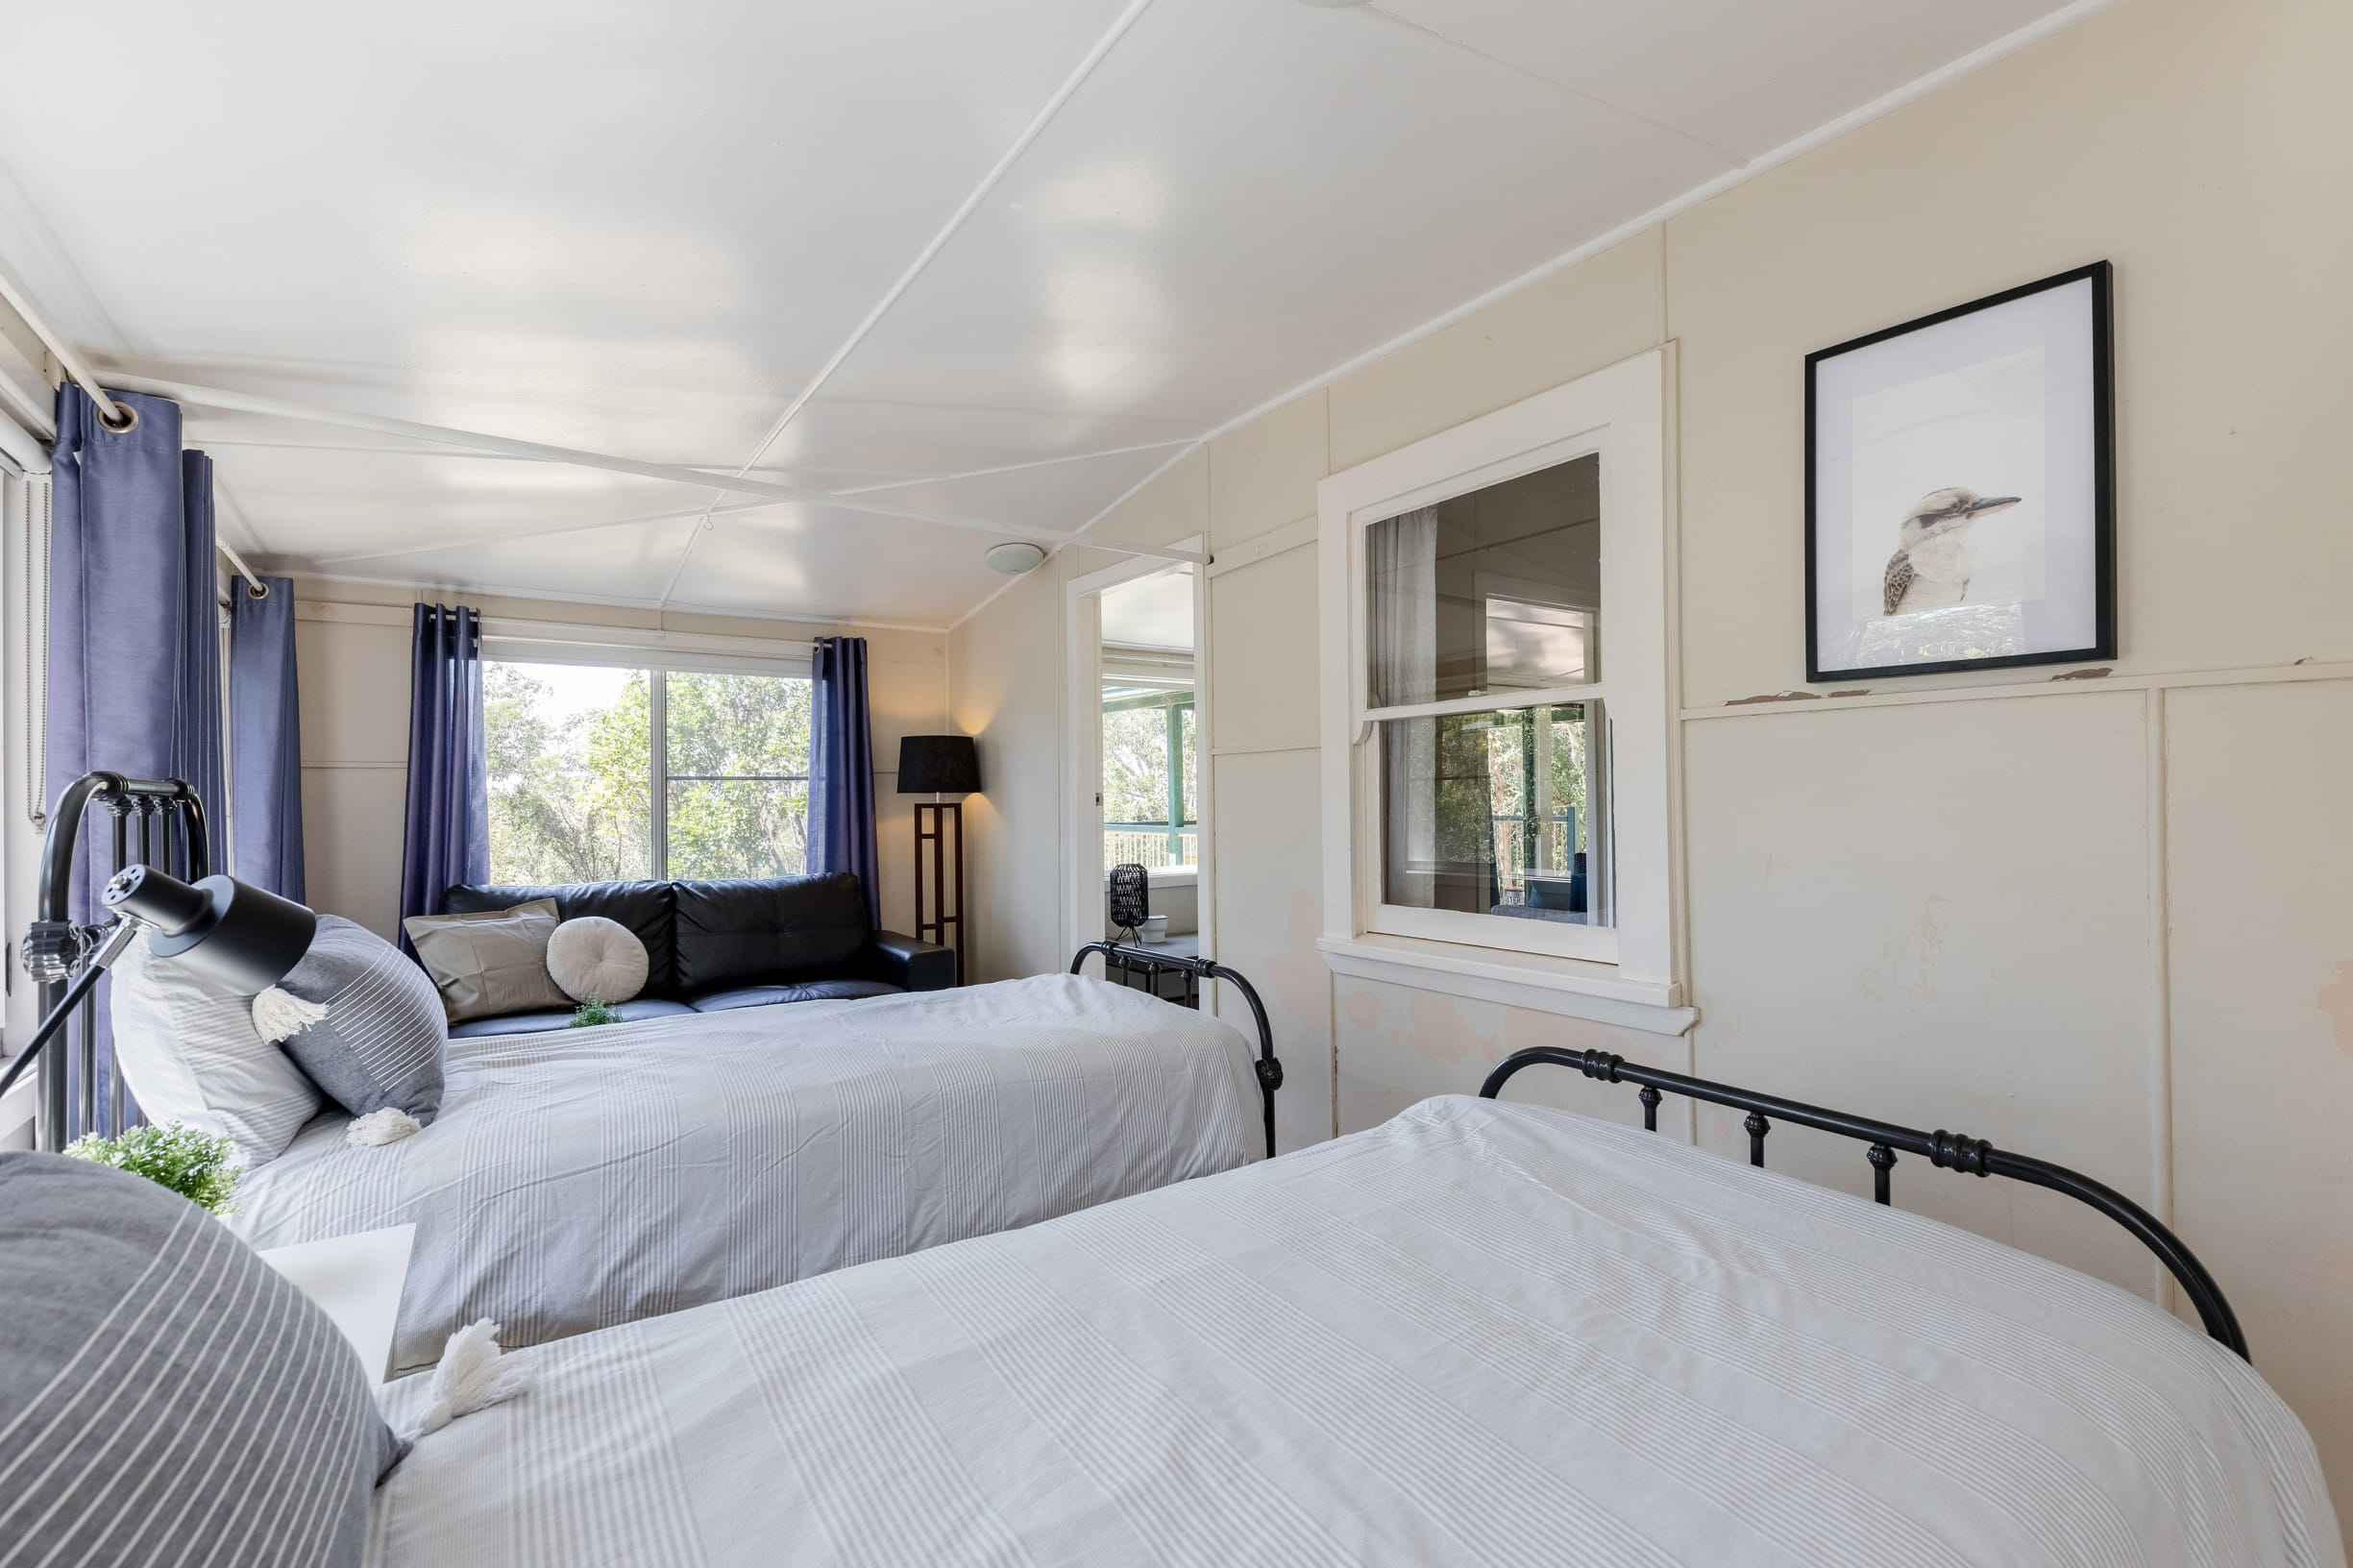 The second bedroom with single beds in Tuckers Rocks Cottage, Bongil Bongil National Park. Photo: Mitchell Franzi/DPIE